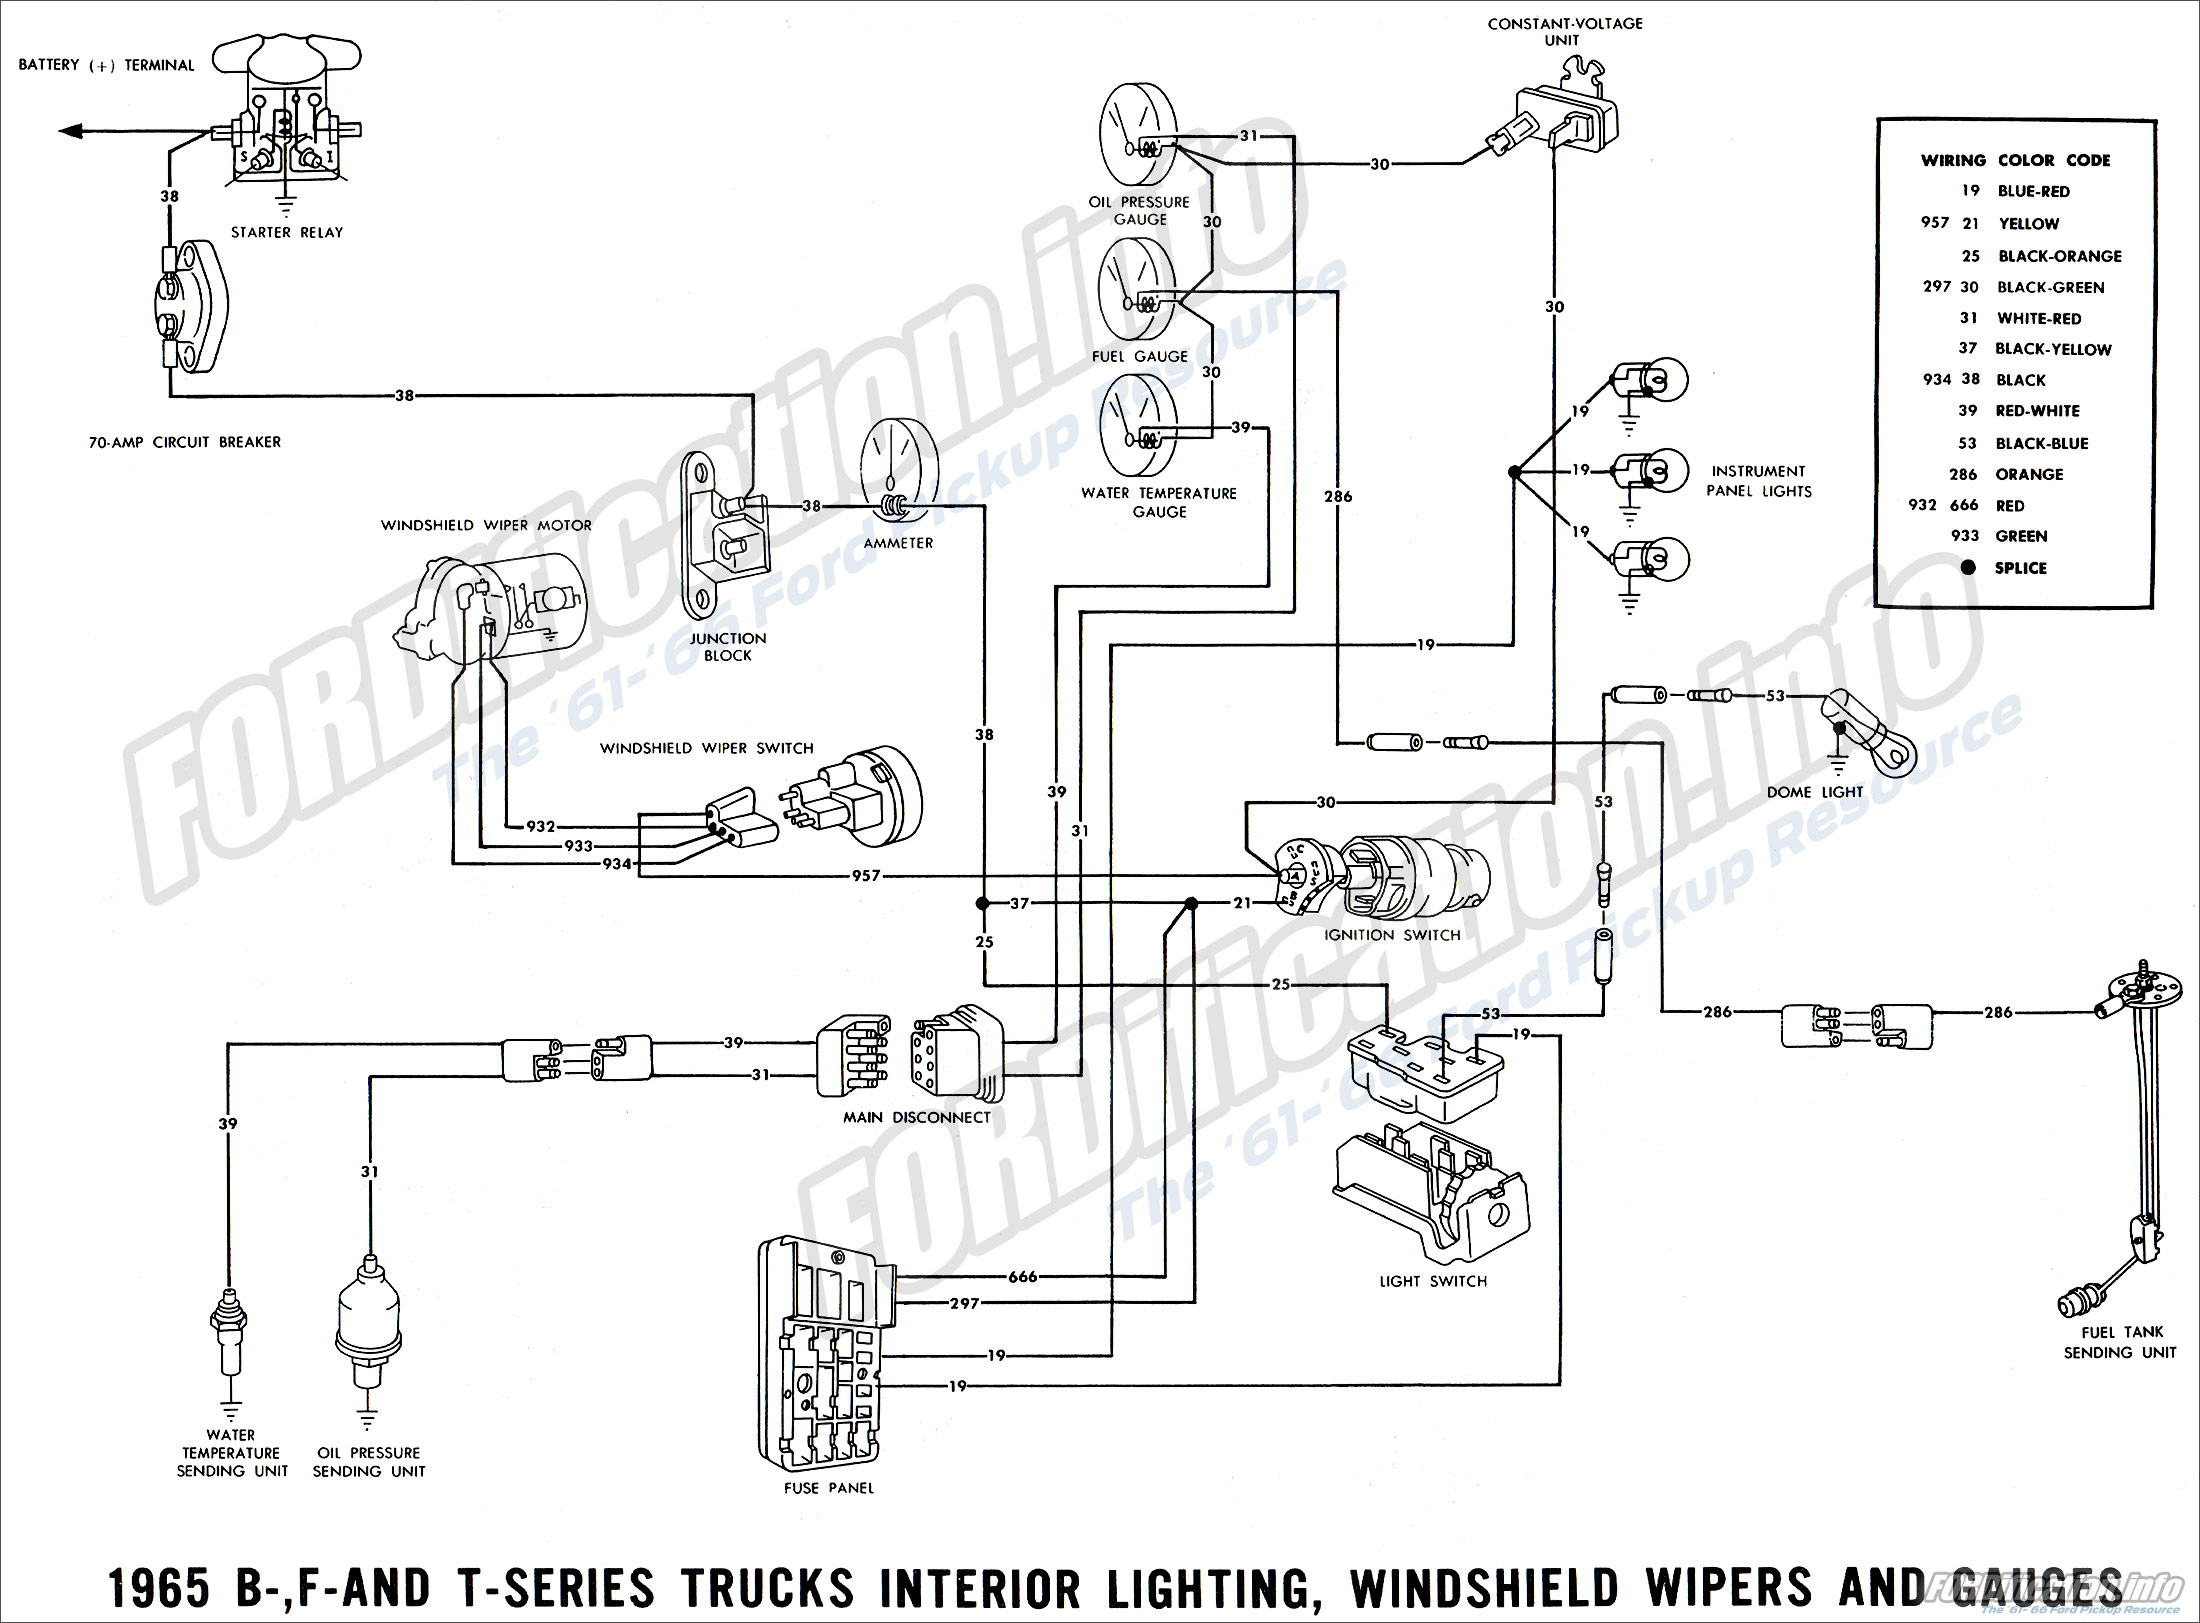 1965 ford truck wiring diagrams fordification info the 61 66 1965 b f and t series truck interior lighting windshield wiper and gauges